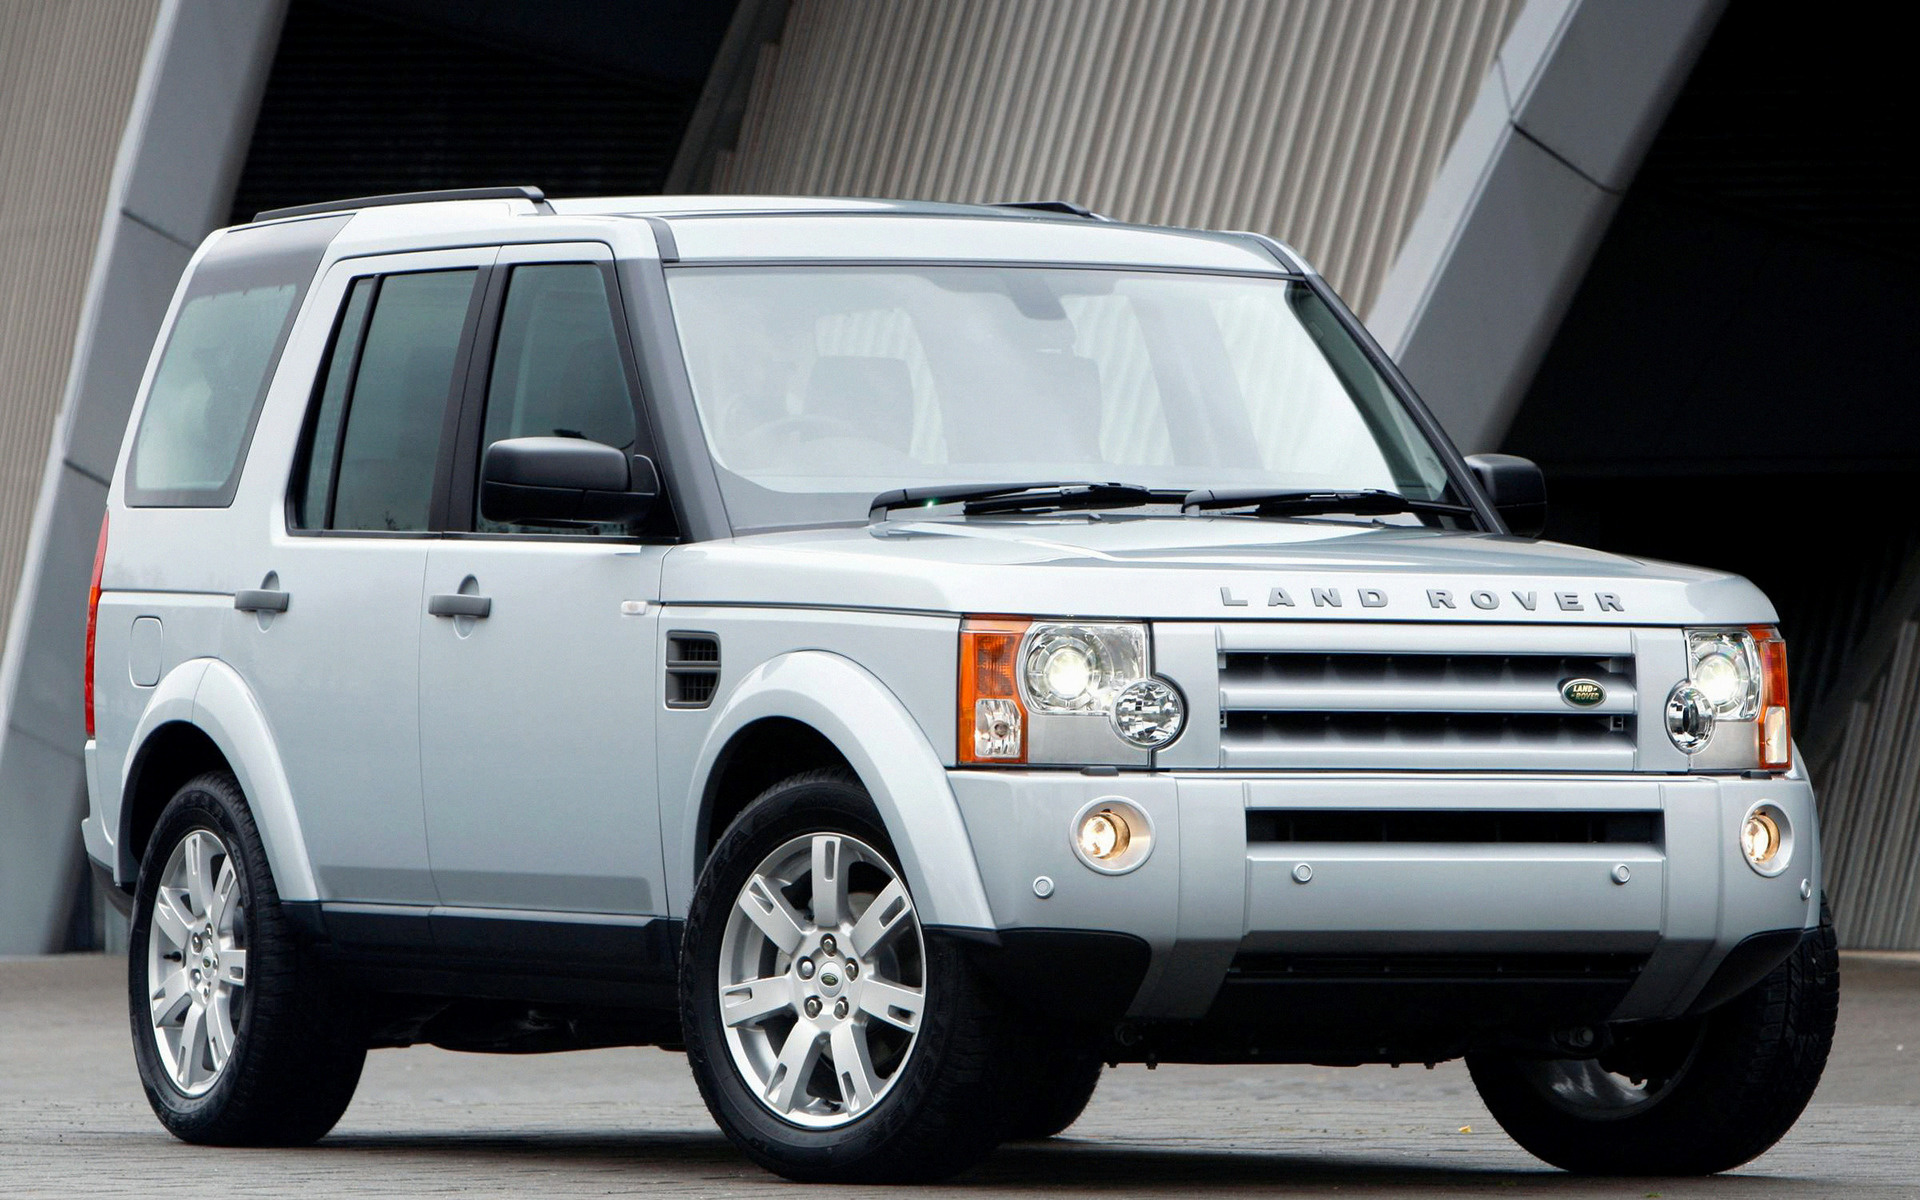 Range Rover Discovery Sport >> 2008 Land Rover Discovery 3 HSE (UK) - Wallpapers and HD Images | Car Pixel